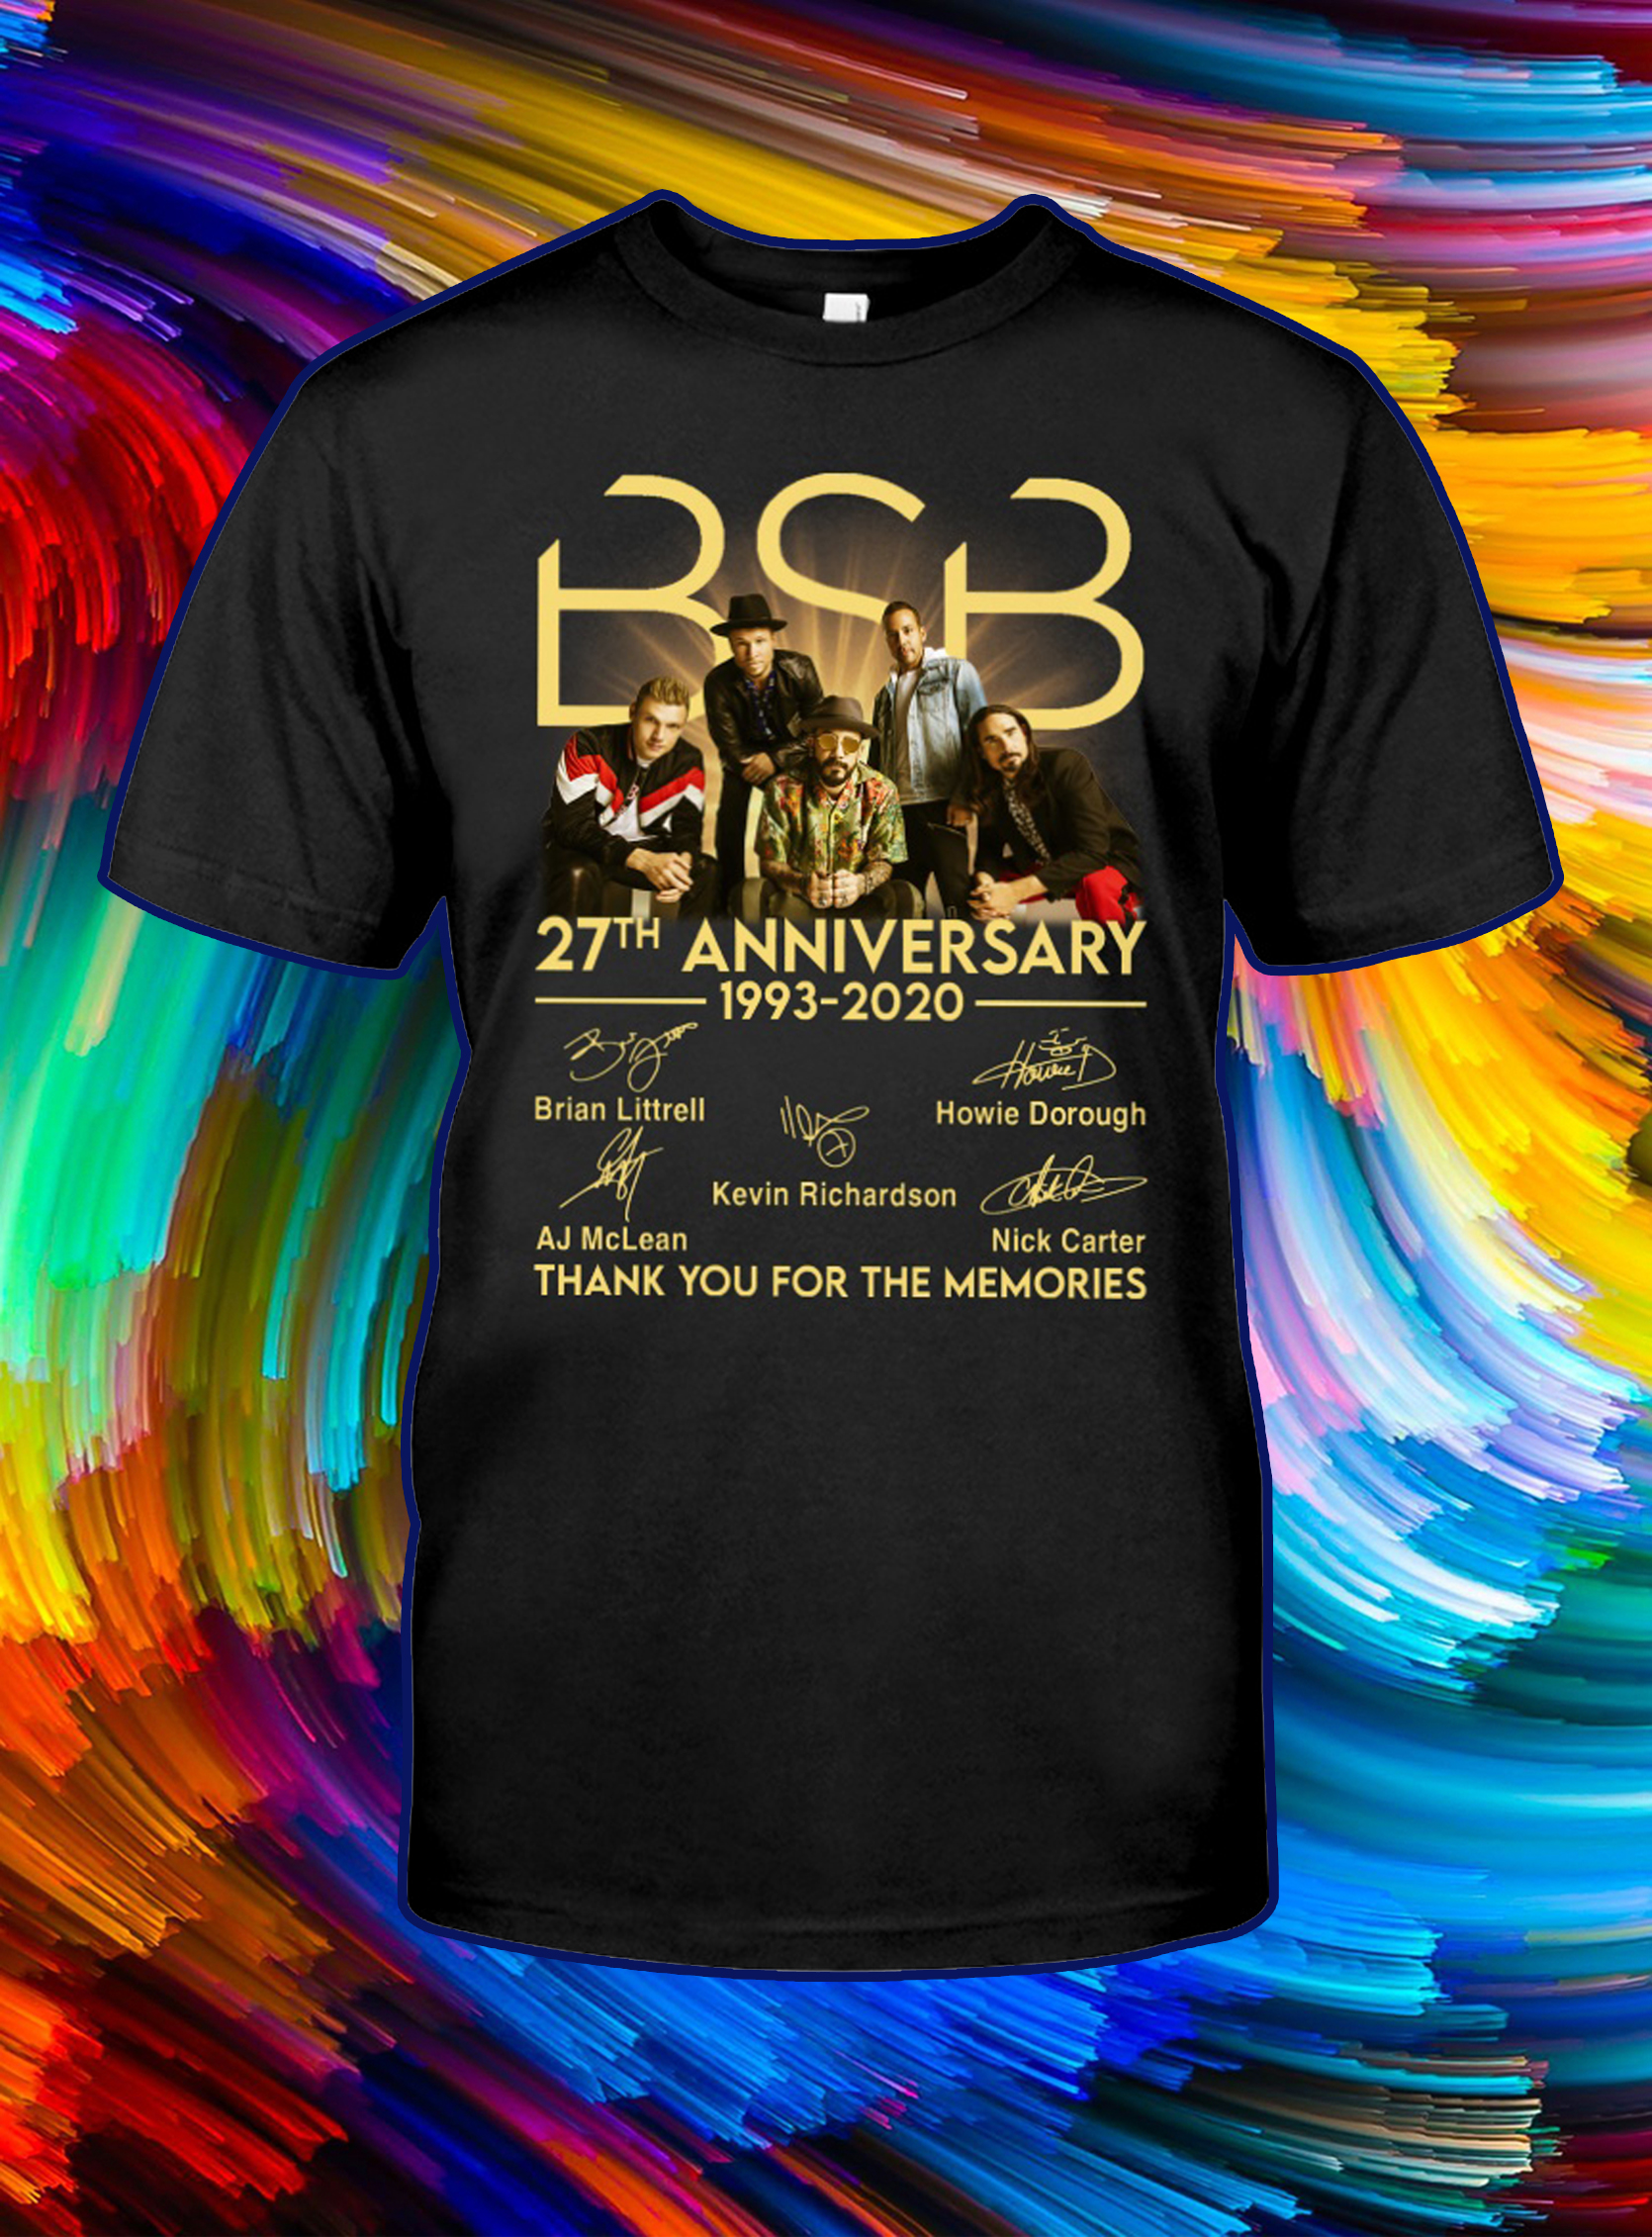 BSB 27th anniversary thank you for the memories signature shirtBSB 27th anniversary thank you for the memories signature shirt